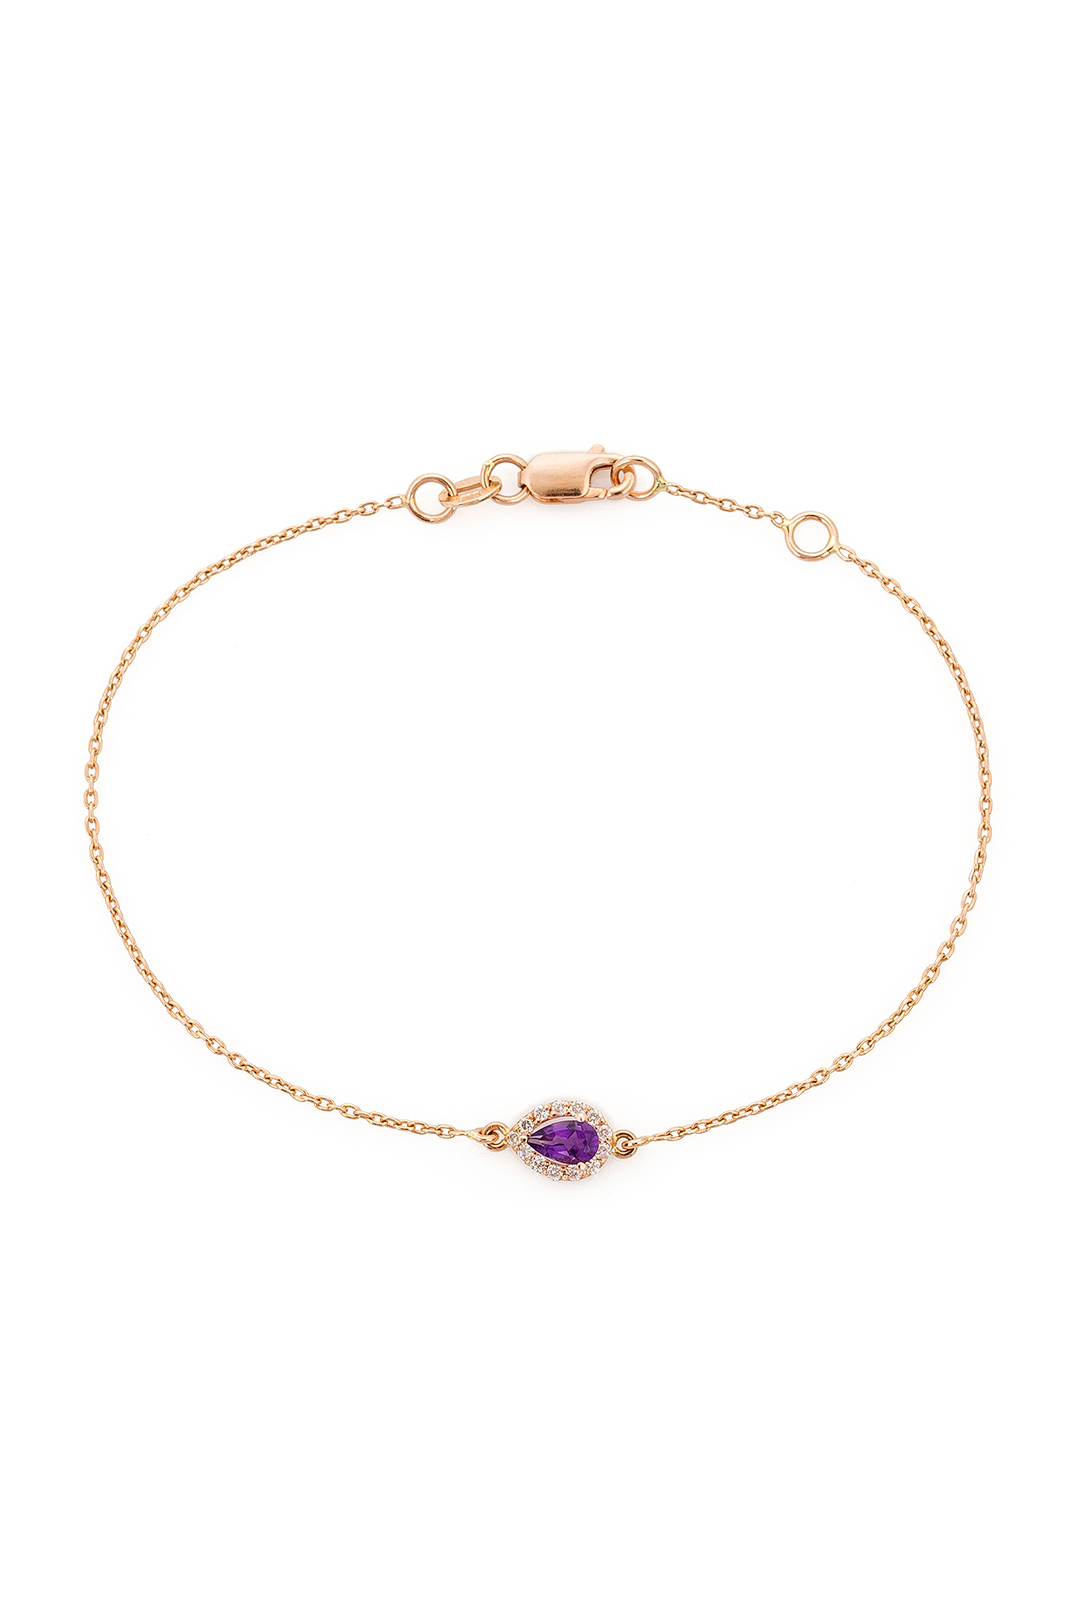 PEAR AMETHYST AND DIAMOND BRACELET